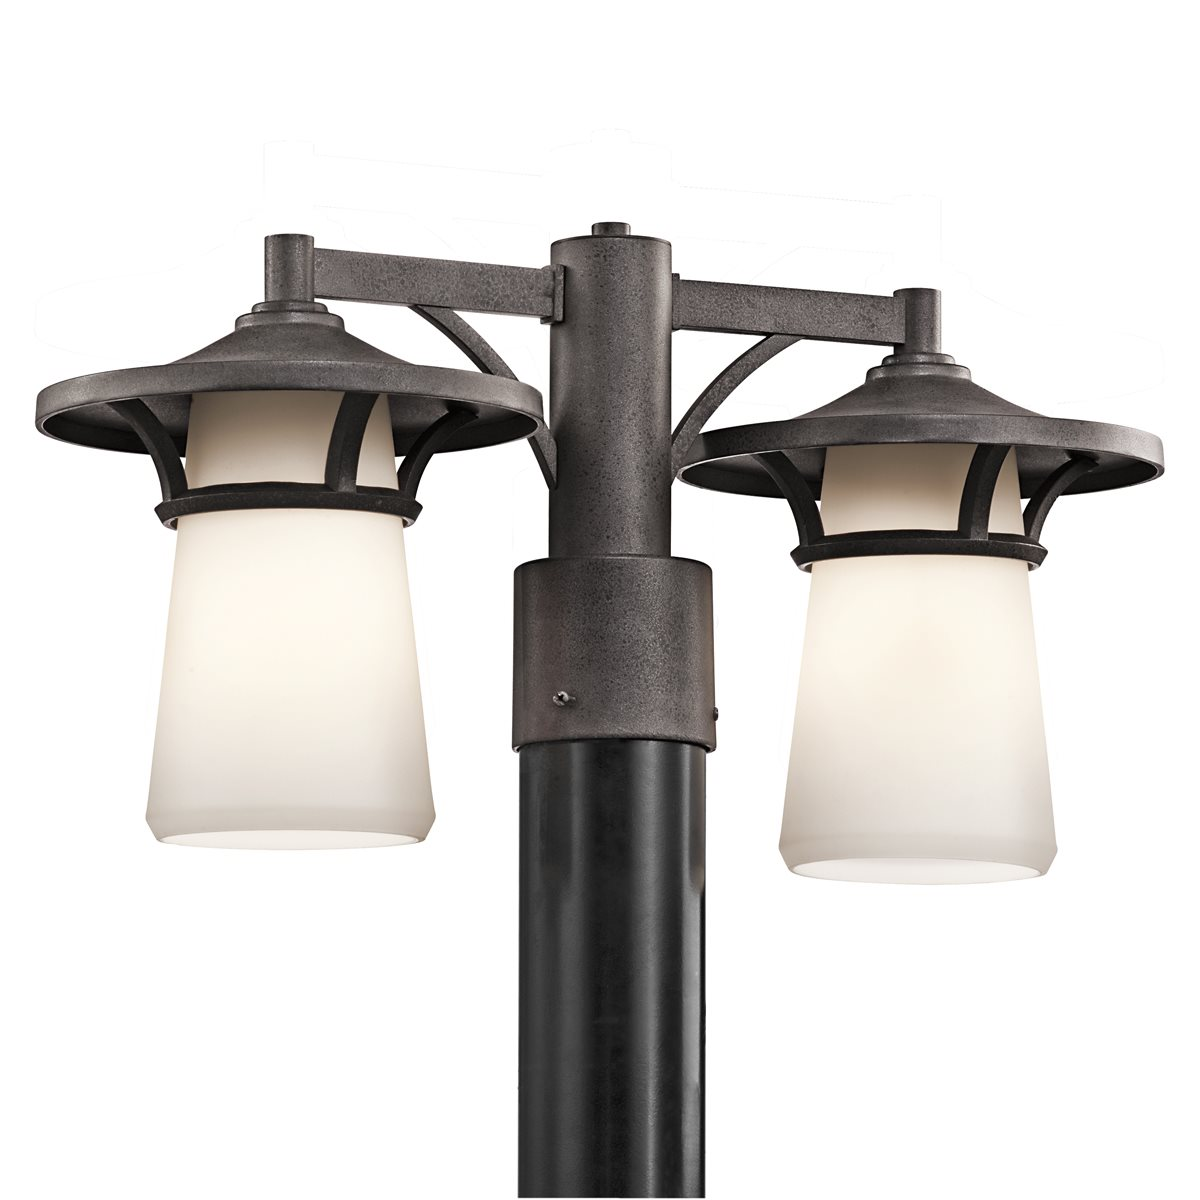 Kichler lighting 49374avi lura modern contemporary for Contemporary outdoor post light fixtures